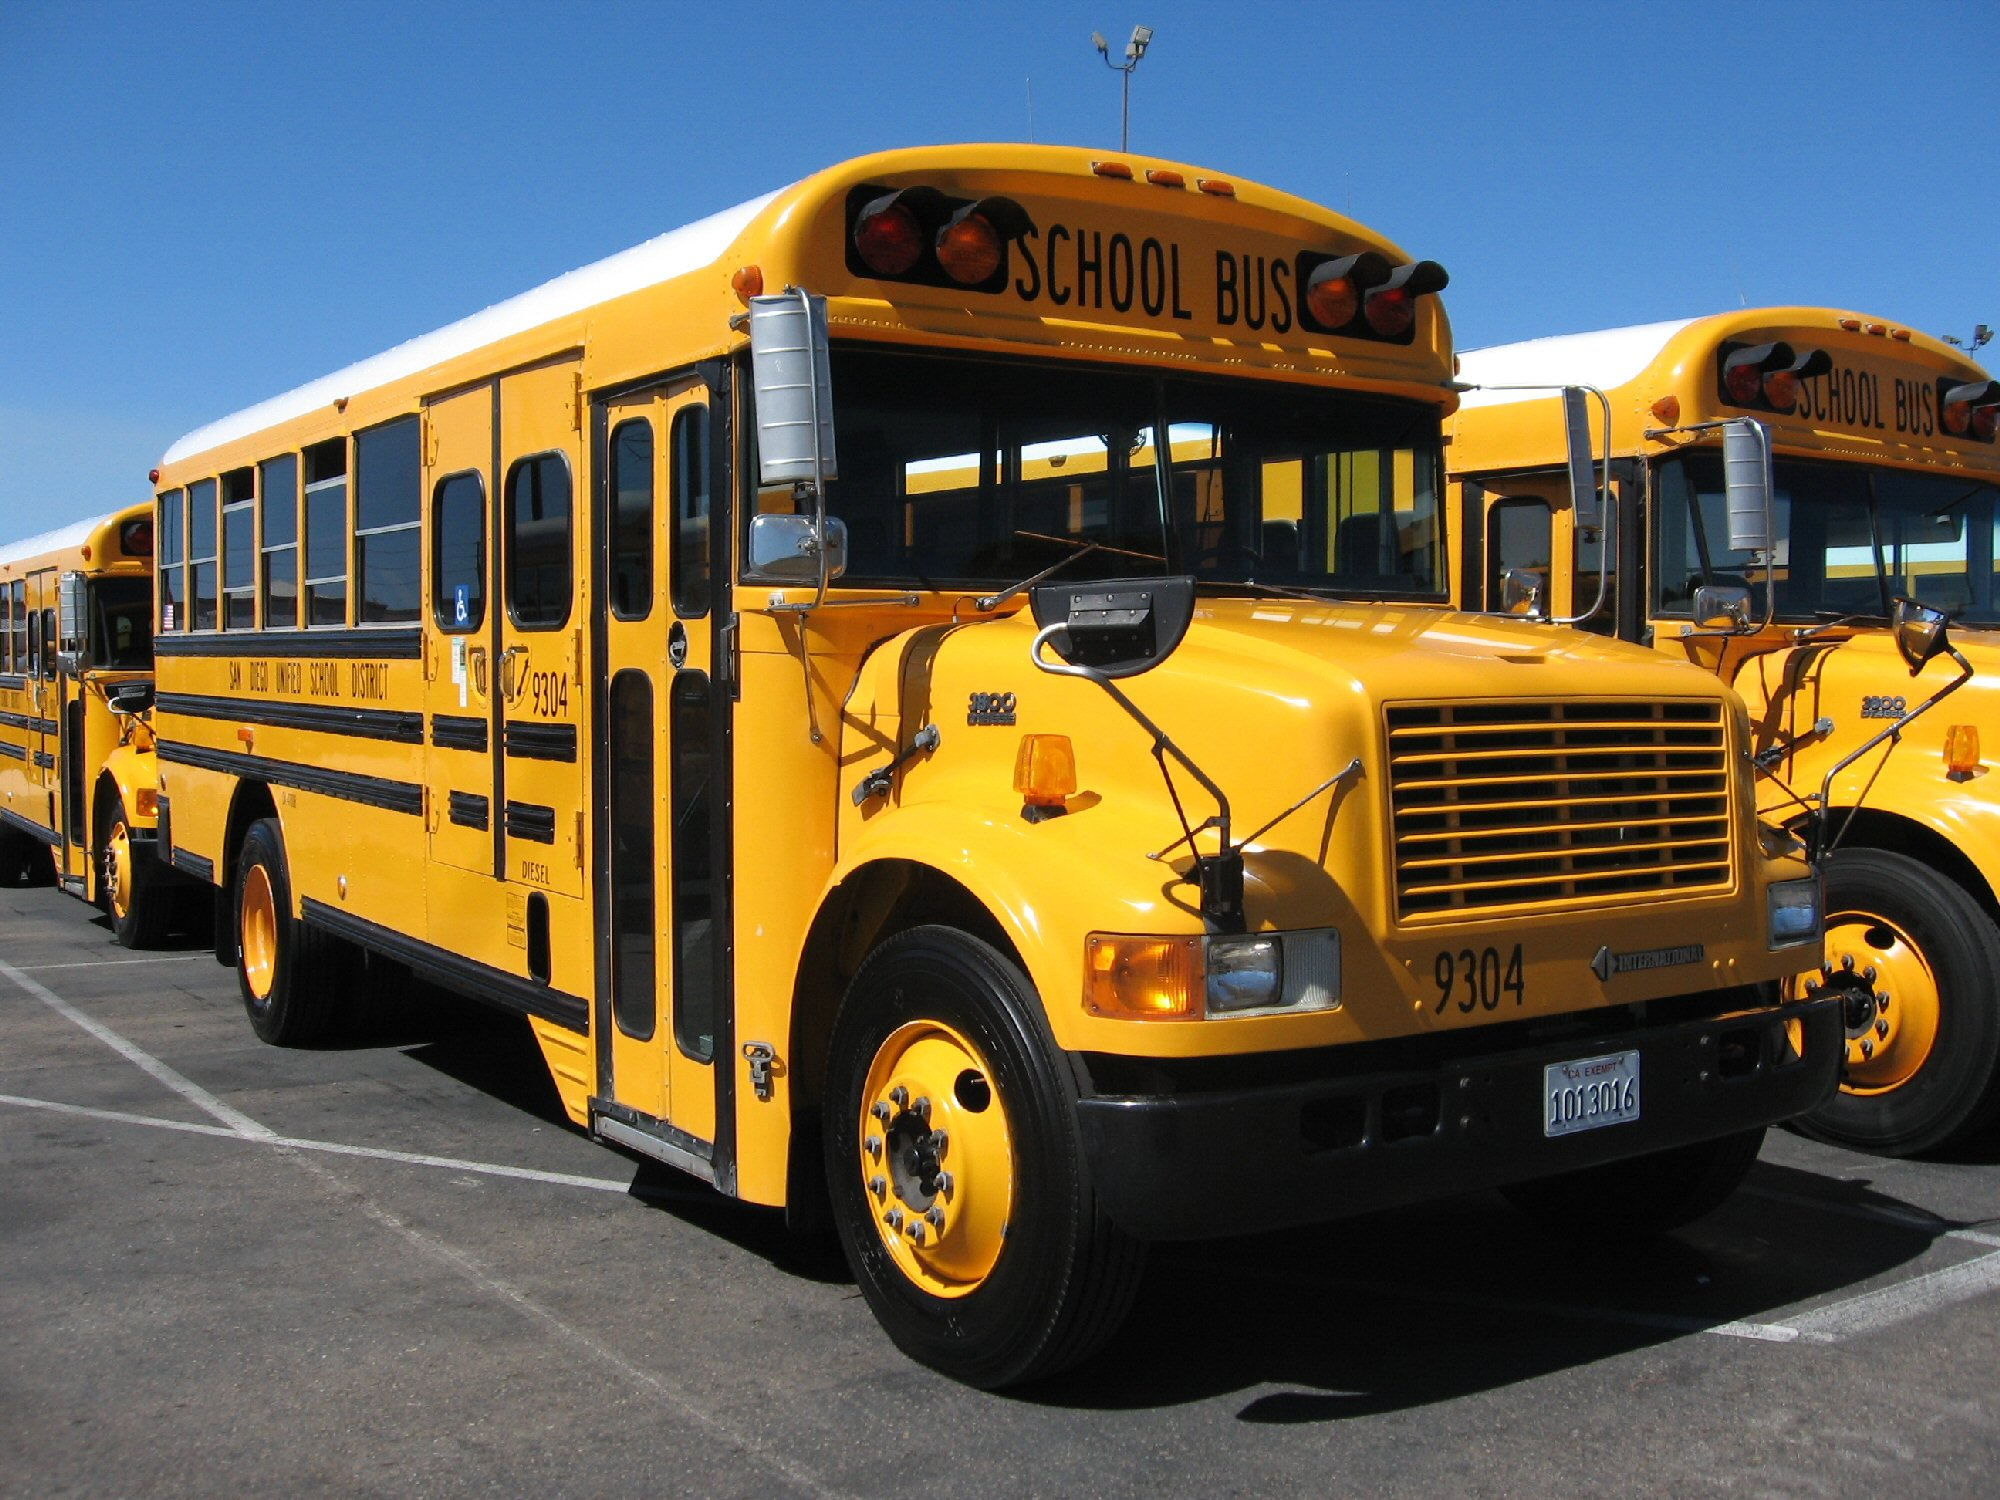 Legislators Restore School Bus Funding Cut General